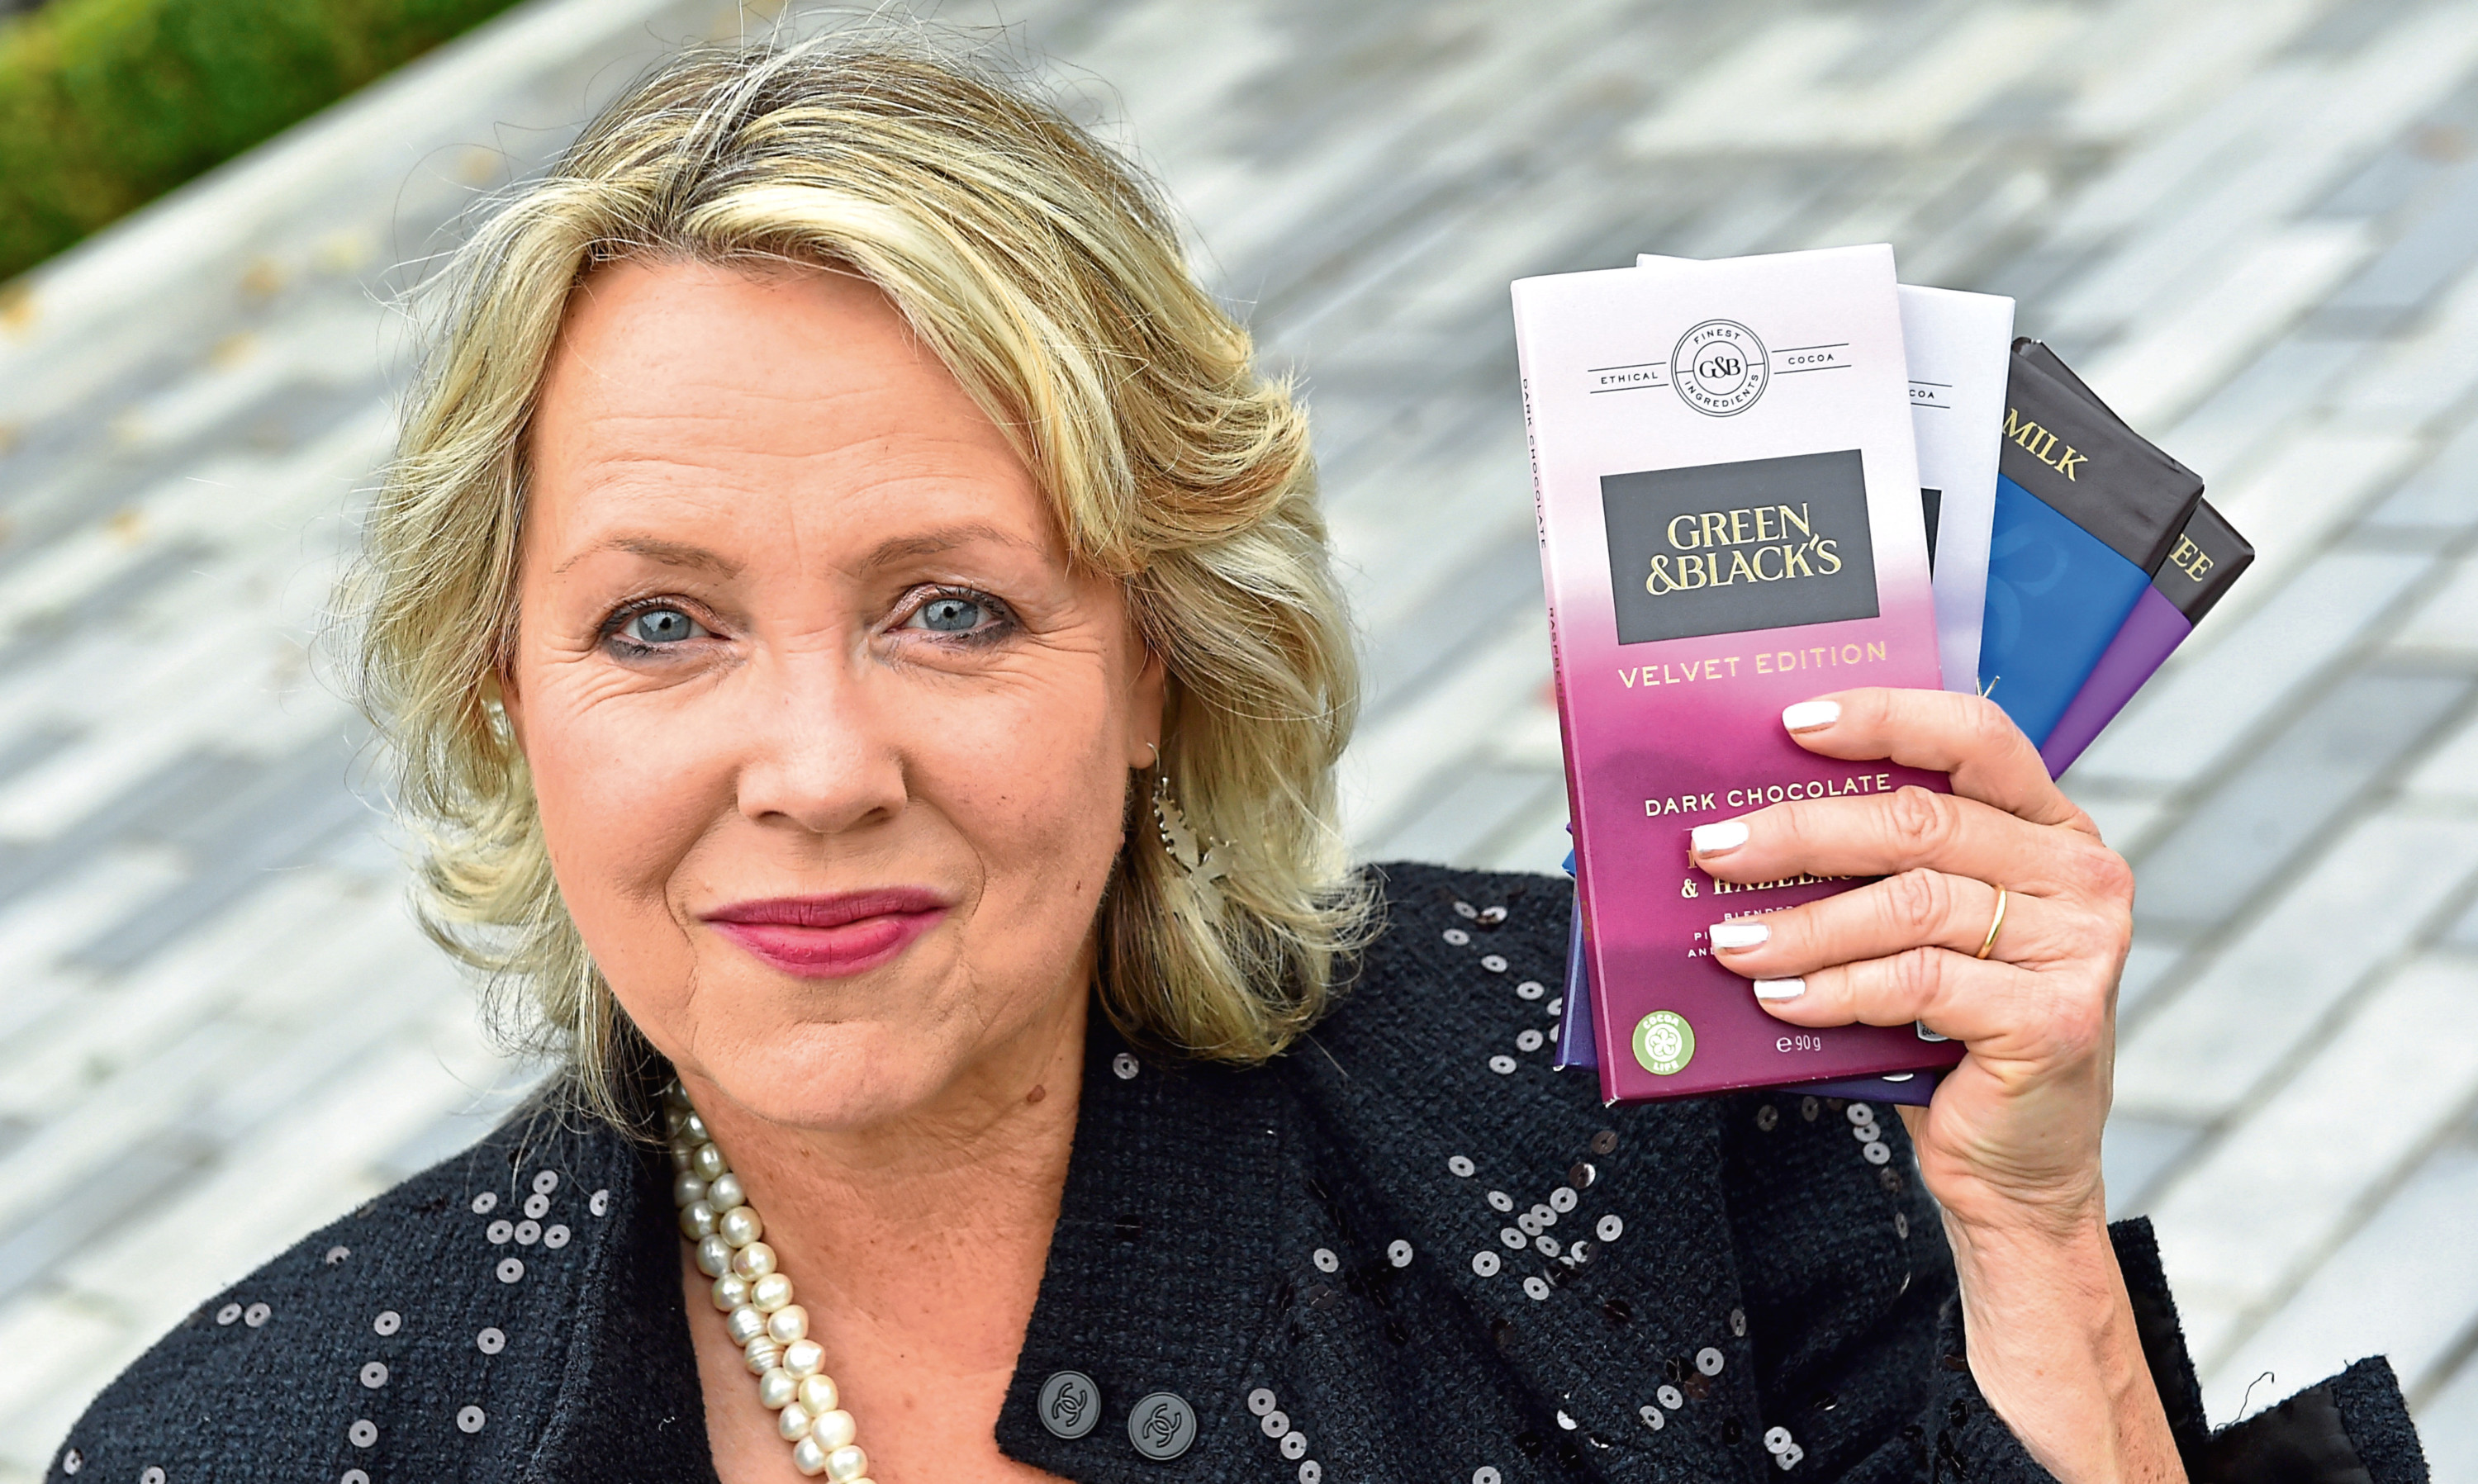 Jo Fairley founded the Green and Blacks chocolate brand.